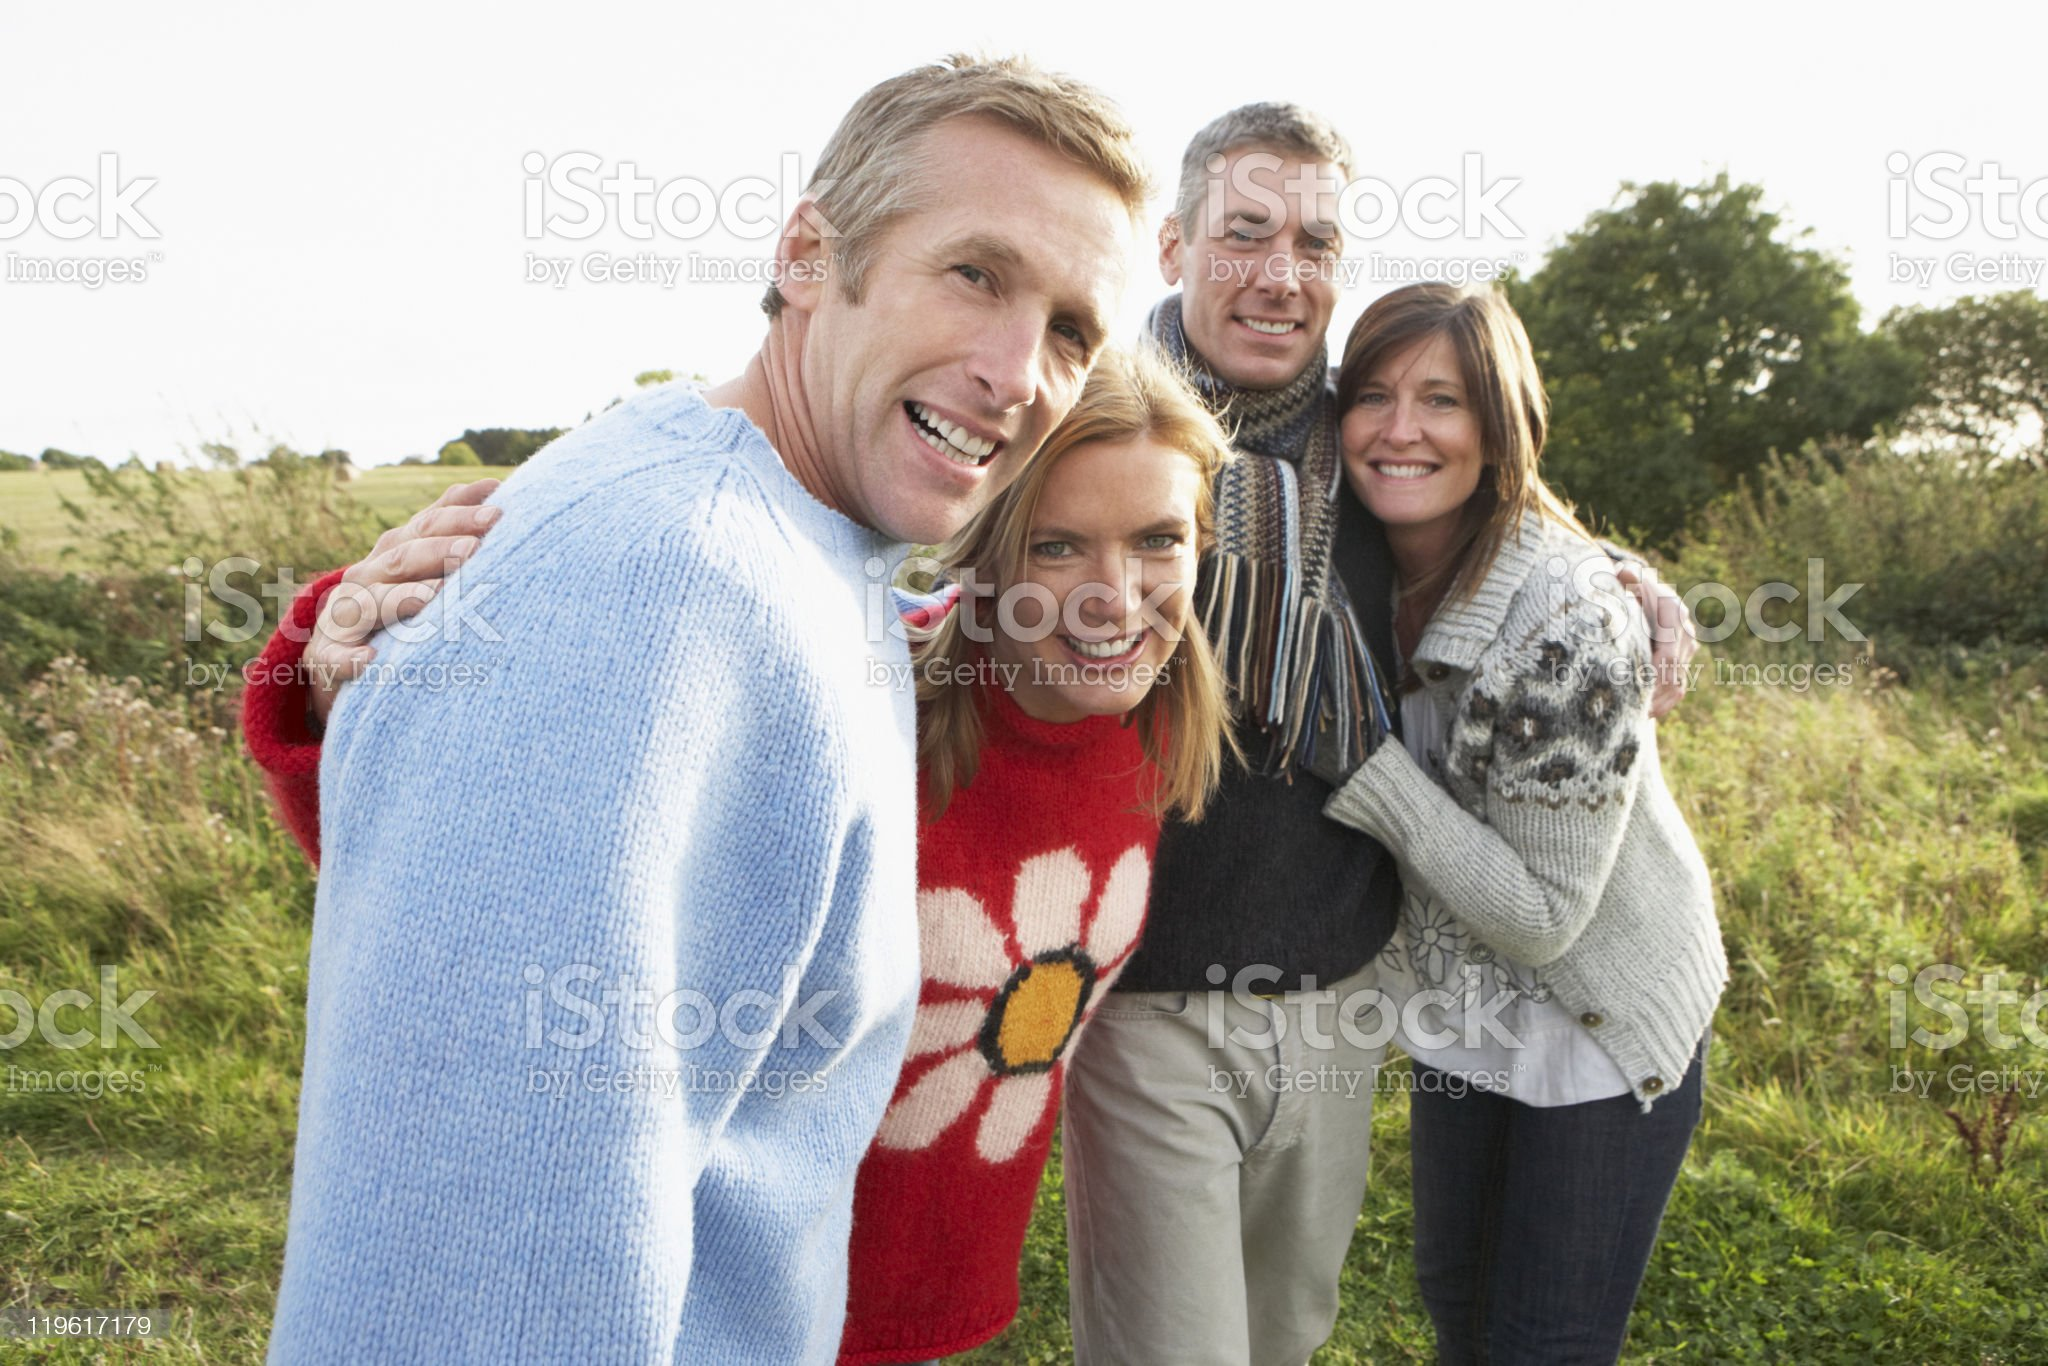 Group Of Friends On Walk In Autumn Countryside Together royalty-free stock photo